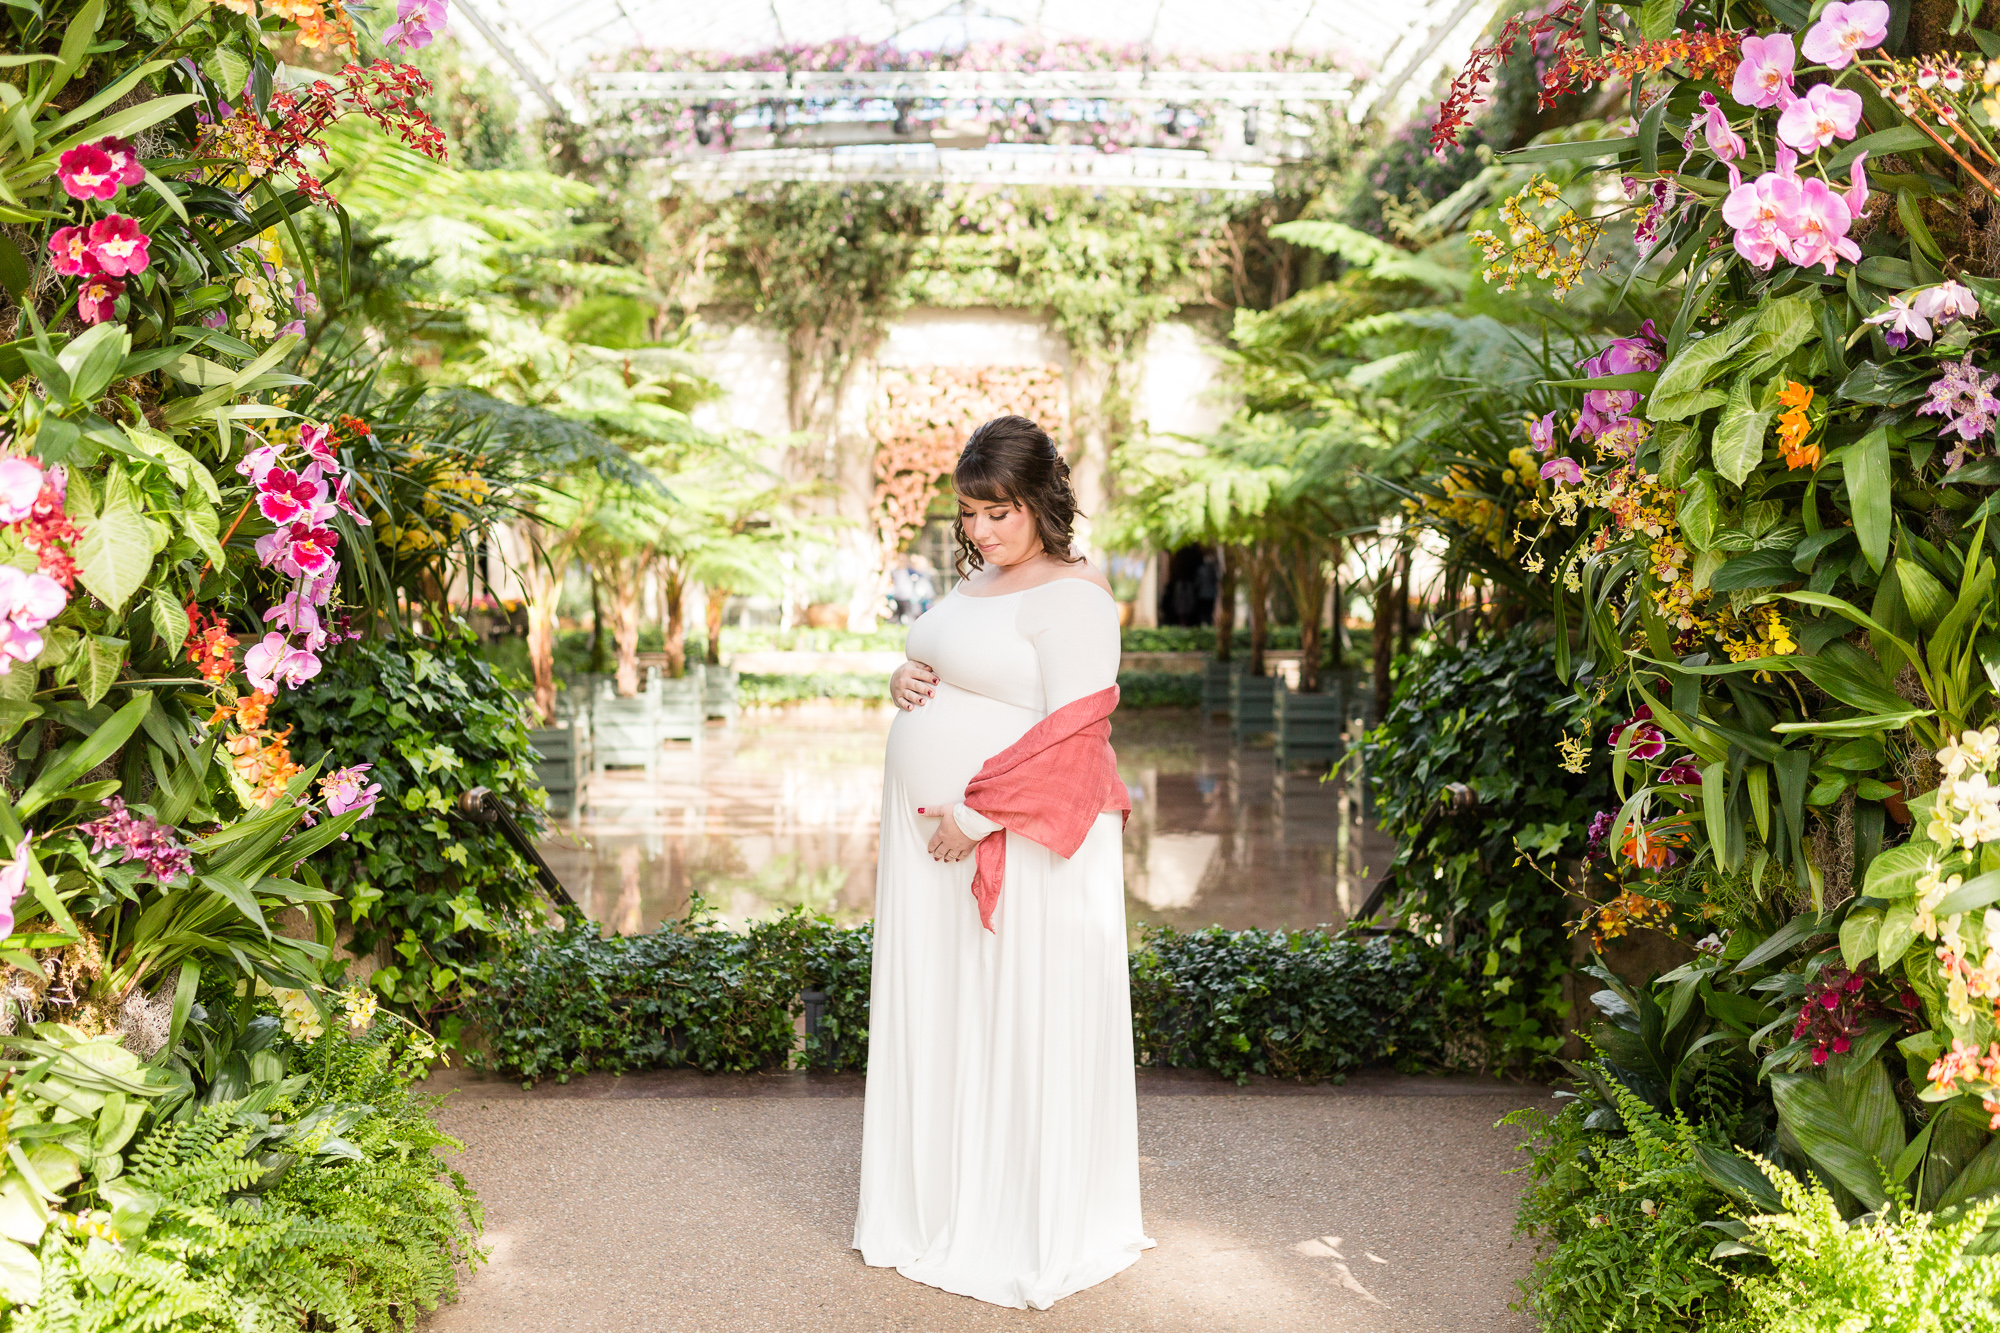 Longwood-gardens-maternity-photos-111.jpg